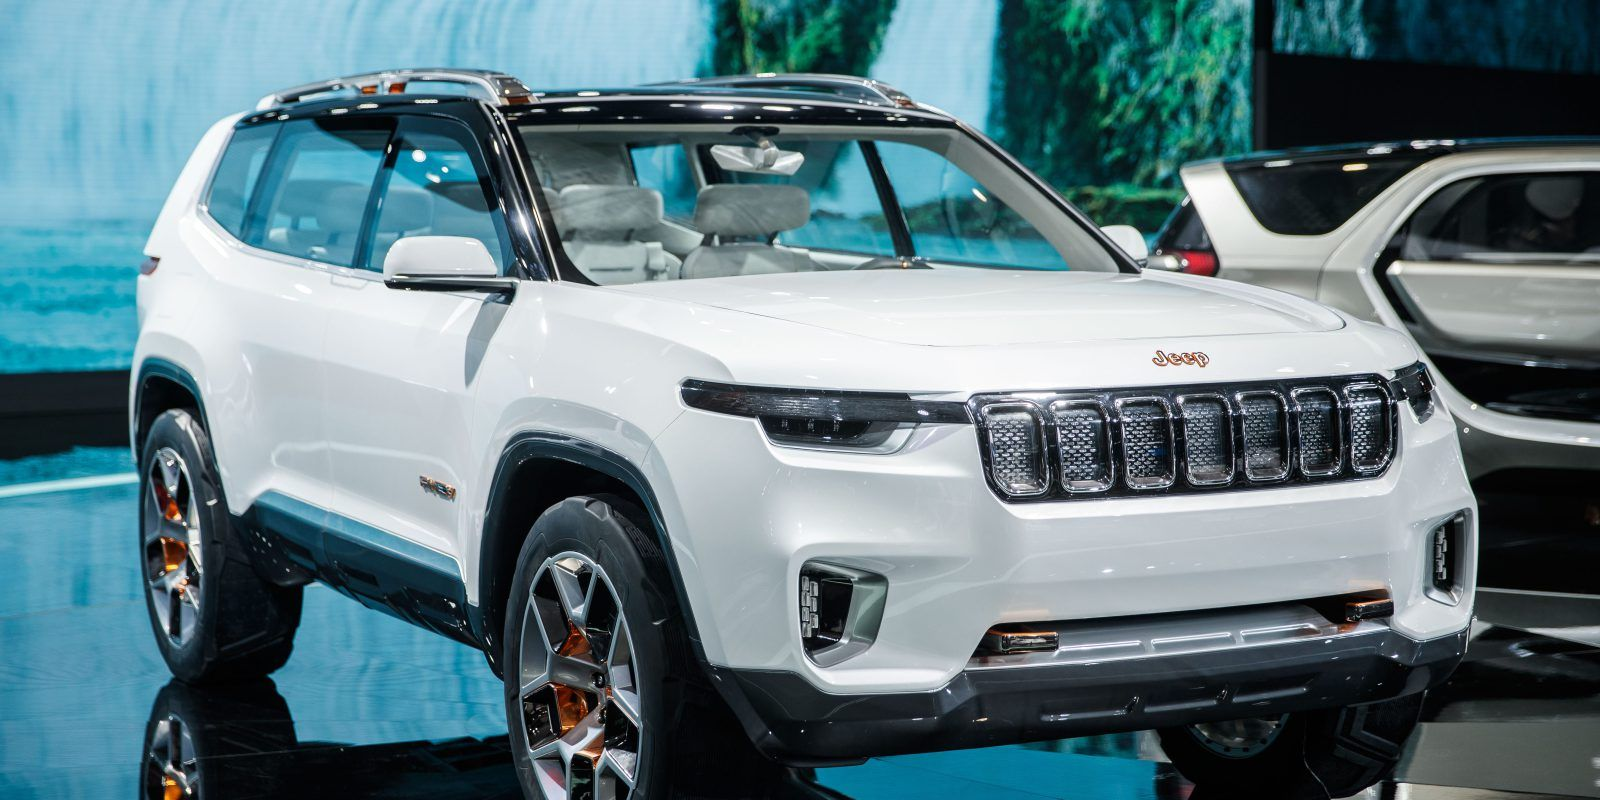 Jeep's plug-in hybrid SUV concept debuts with a ~40 miles all